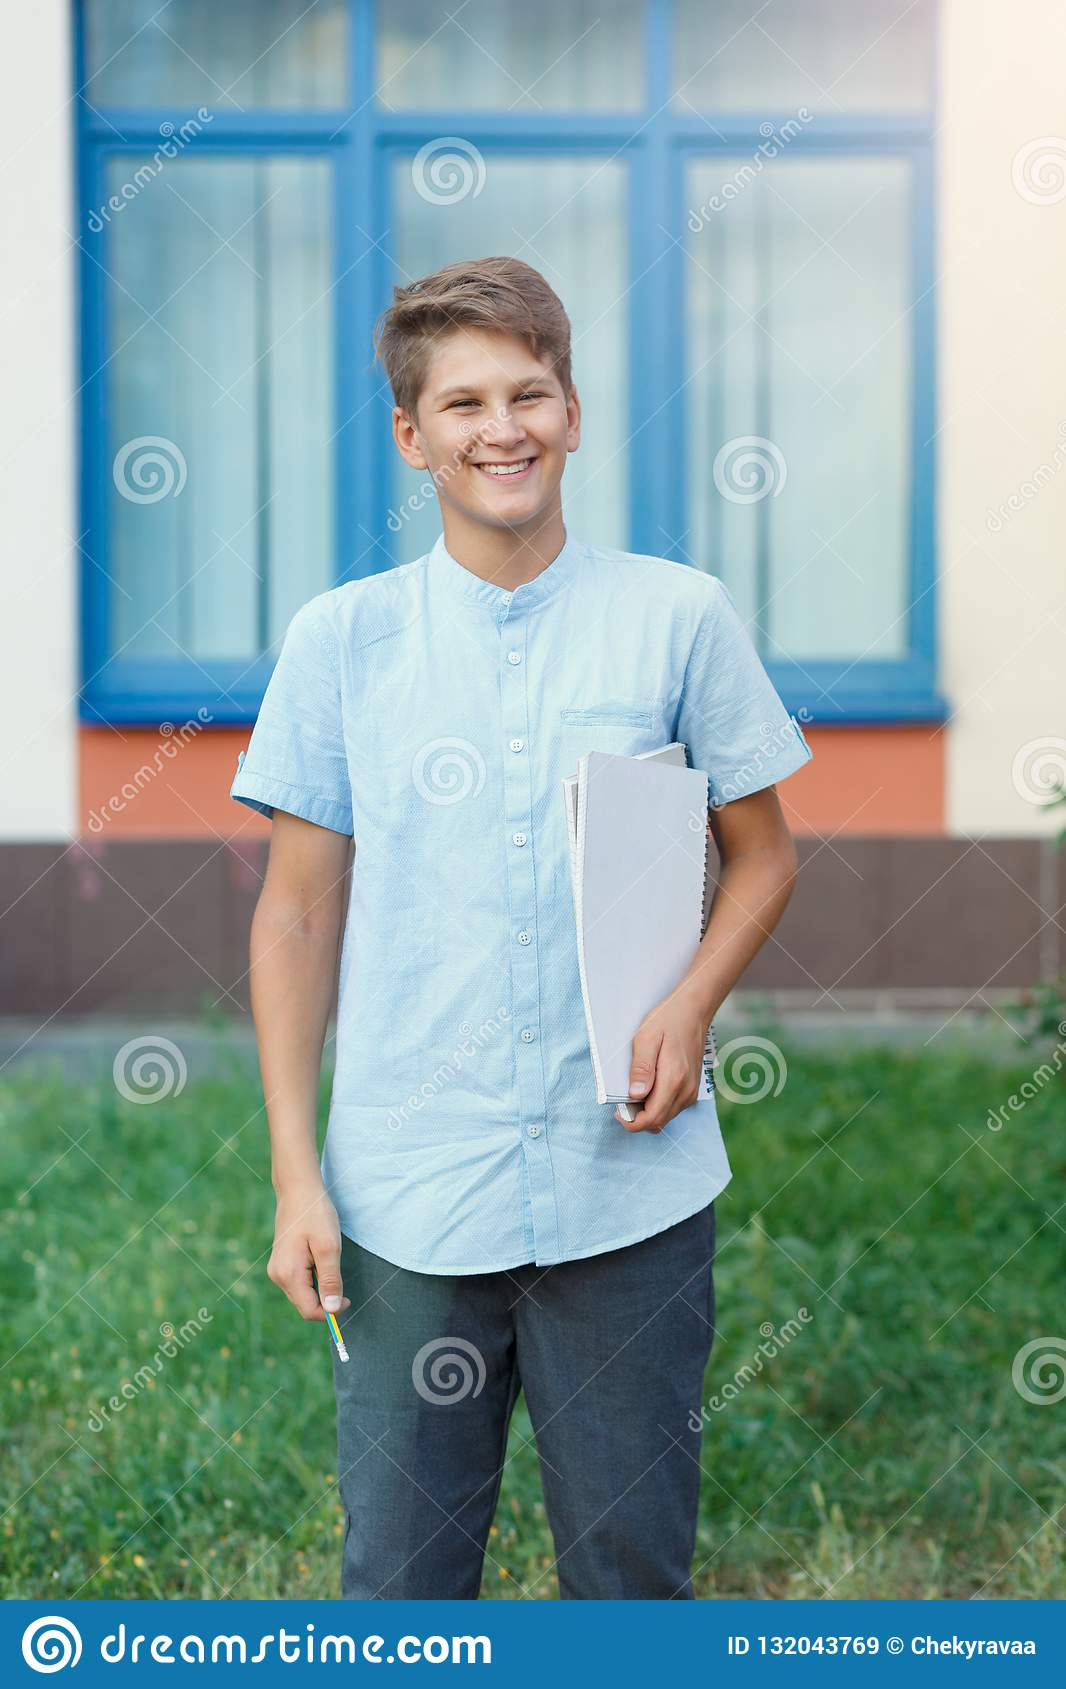 cute 11 year old boy stock pictures, royalty-free photos & images.